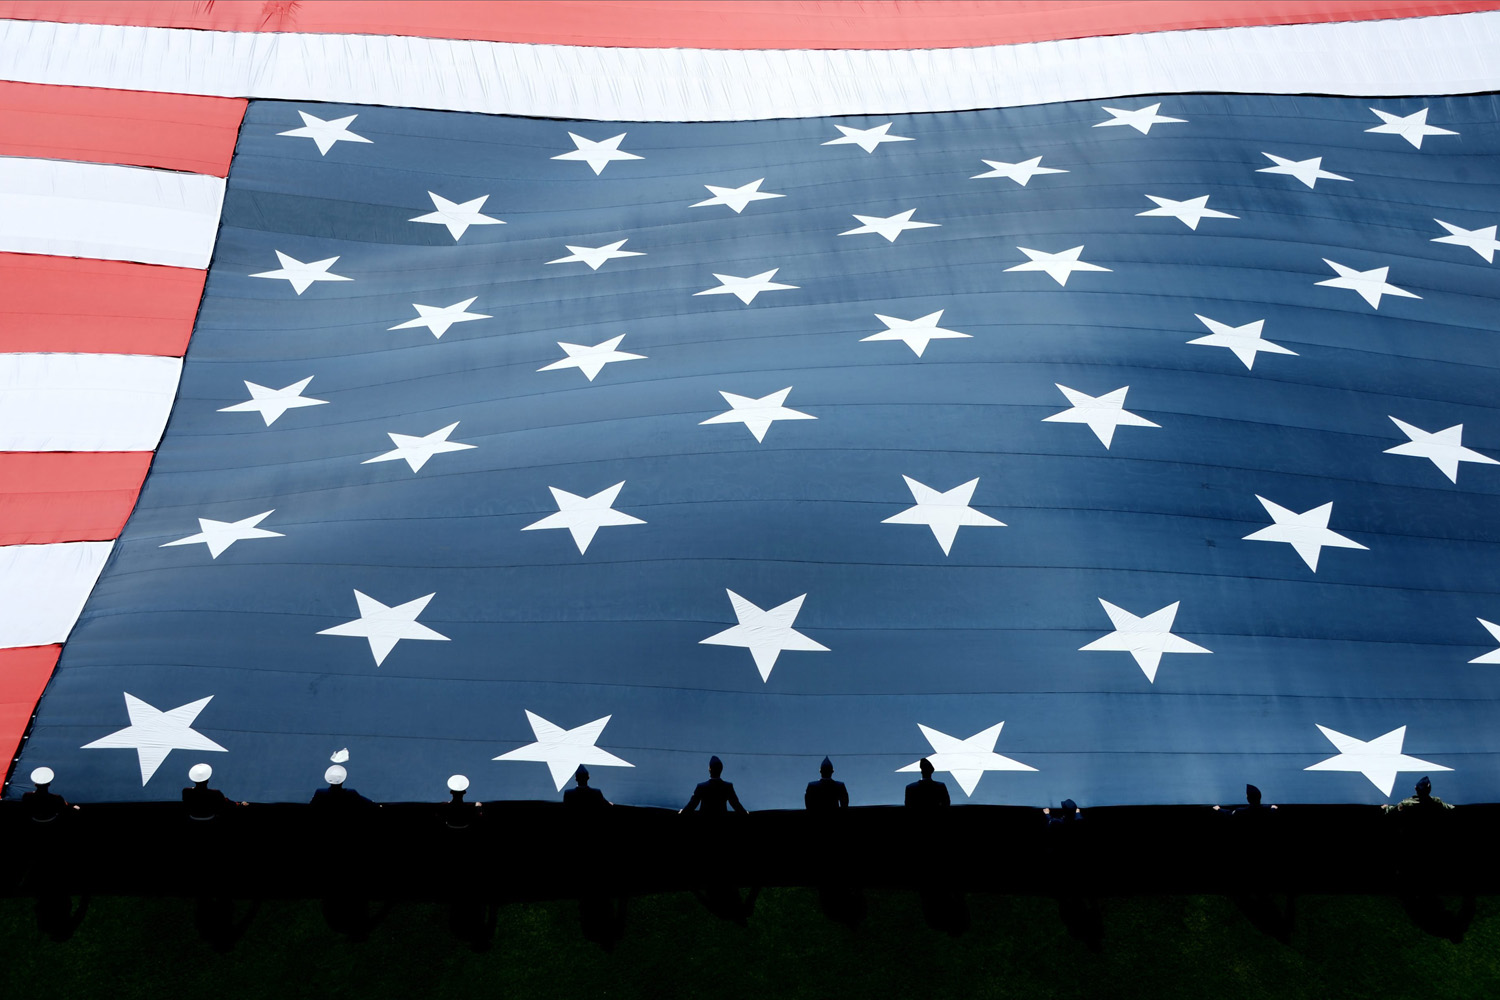 Mar. 31, 2014. A giant American flag is unfurled on the field during ceremonies before the start of the game between the Washington Nationals and the New York Mets at Citi Field in Flushing Meadows, New York.